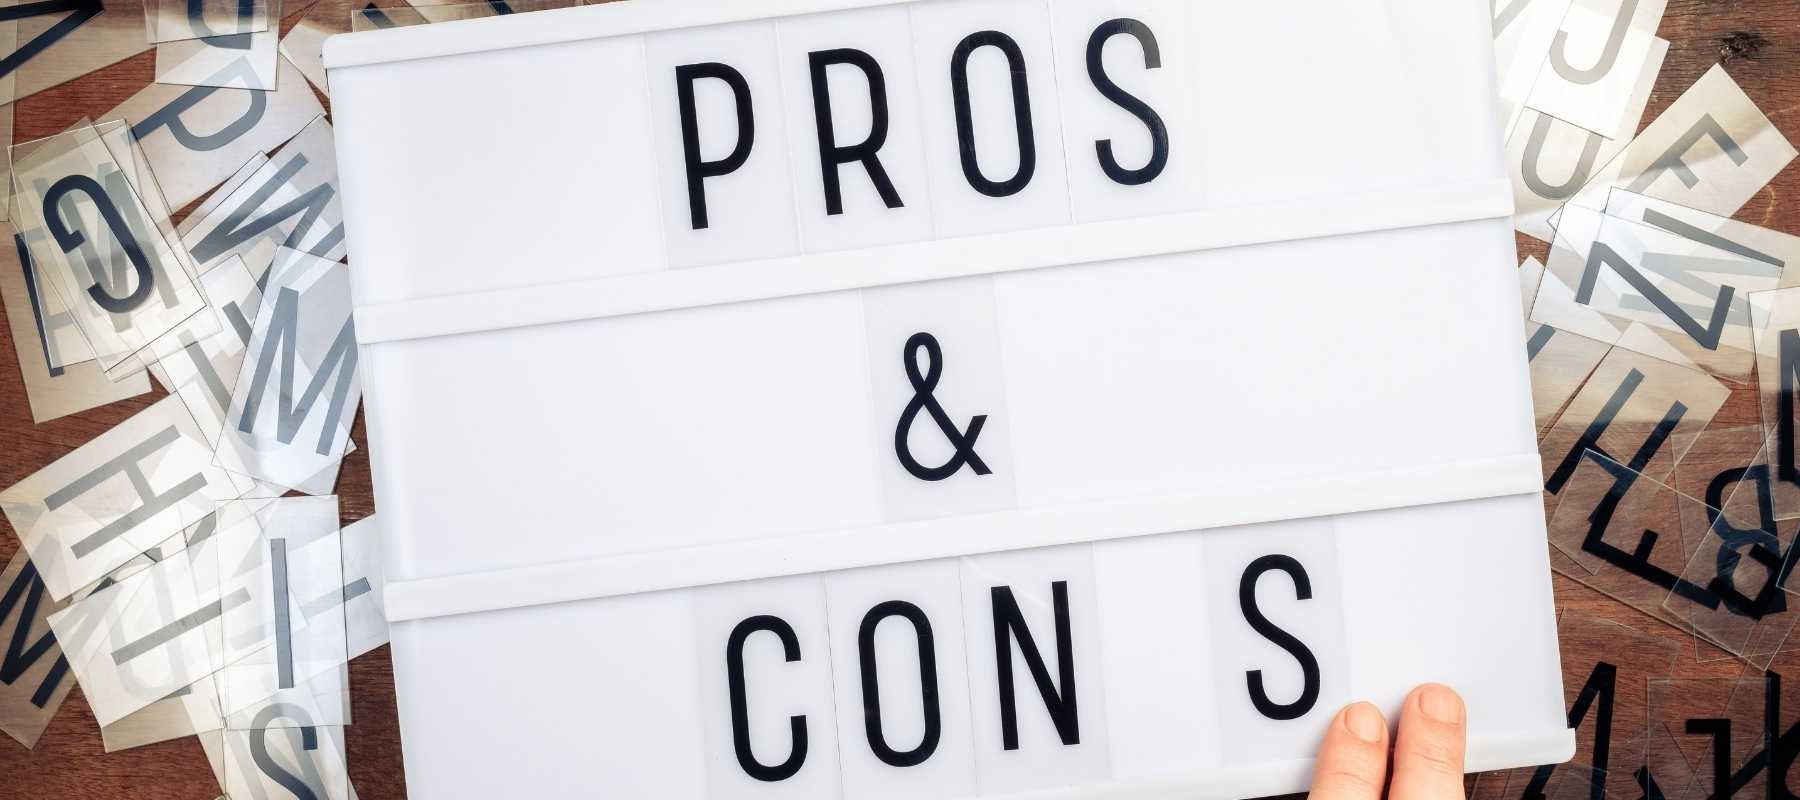 how to dj your own wedding - pros and cons.